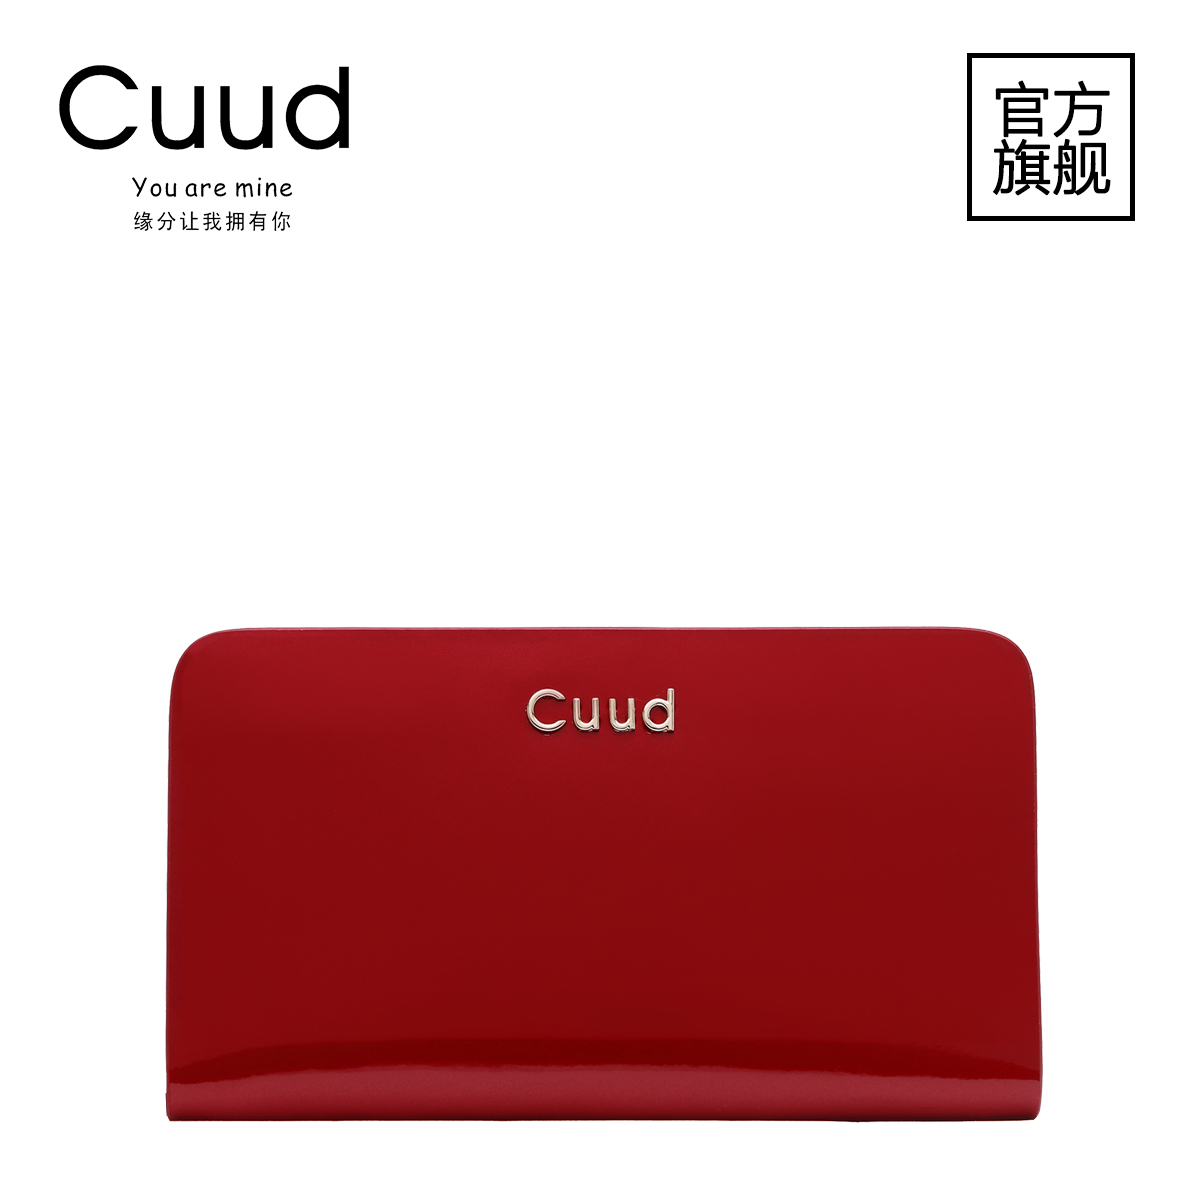 Cuud spring new red Zip Wallet Leather Hand bag leather and large capacity Long Wallet zuoyi crocodile leather original zipper snap multifunctional in large capacity and long wallet